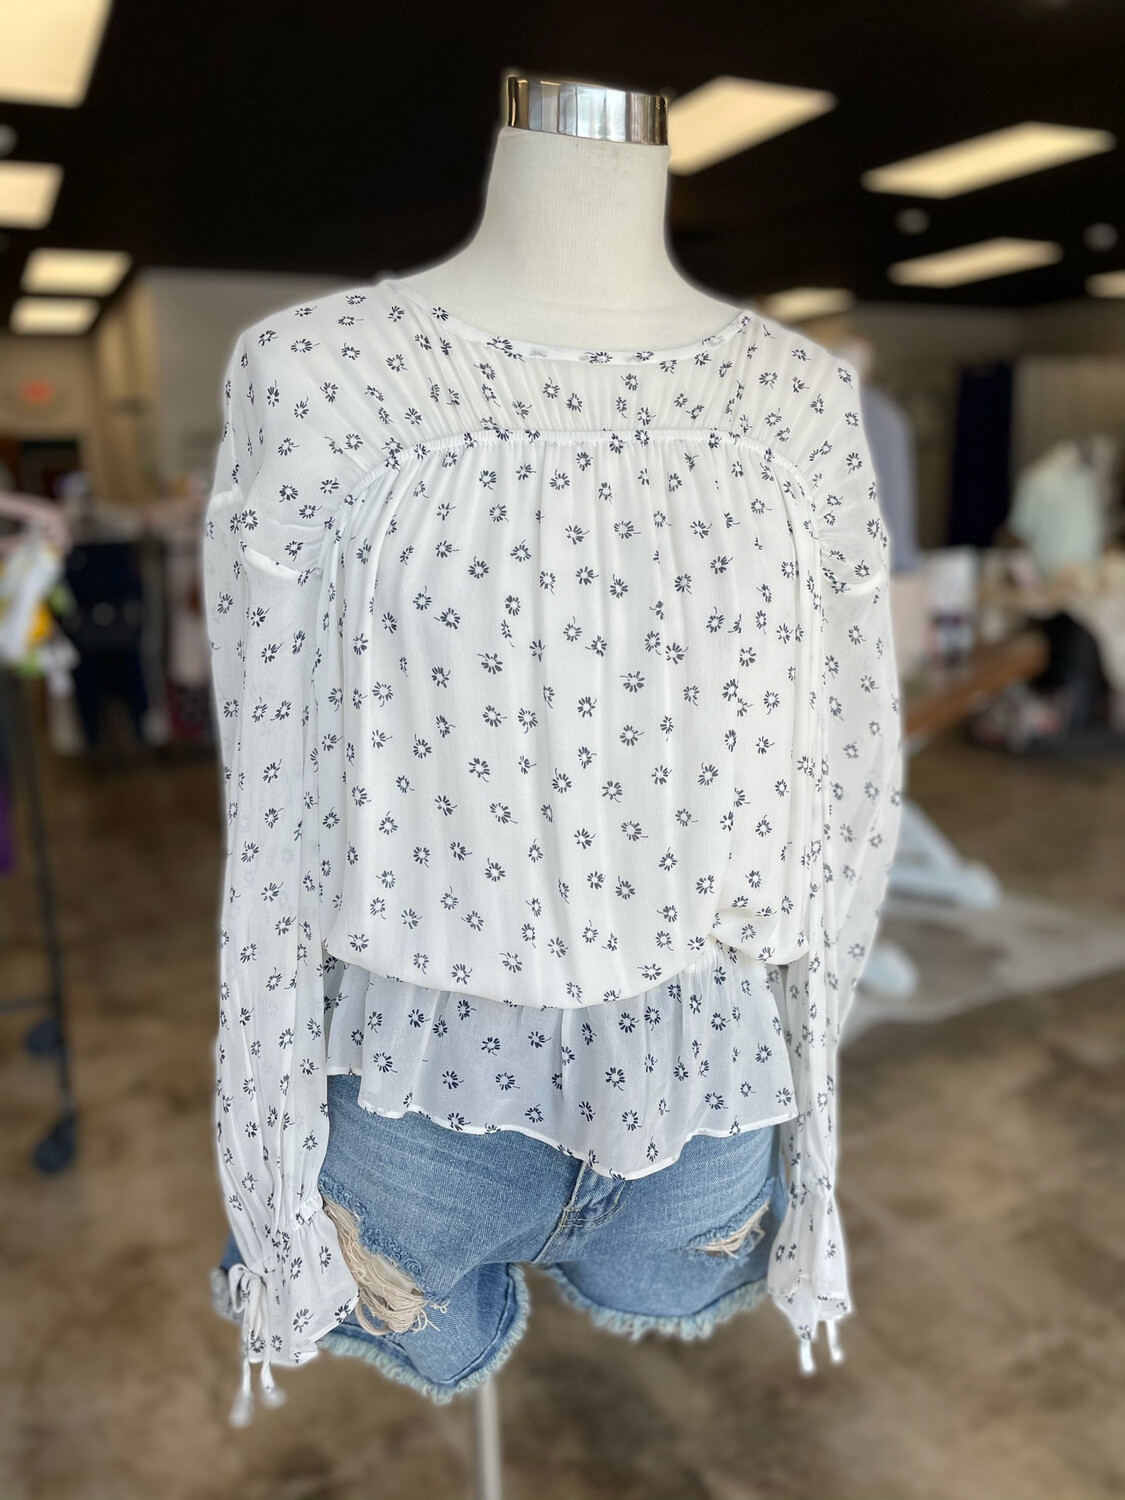 Joie White Blouse w/ Navy Floral Pattern - M